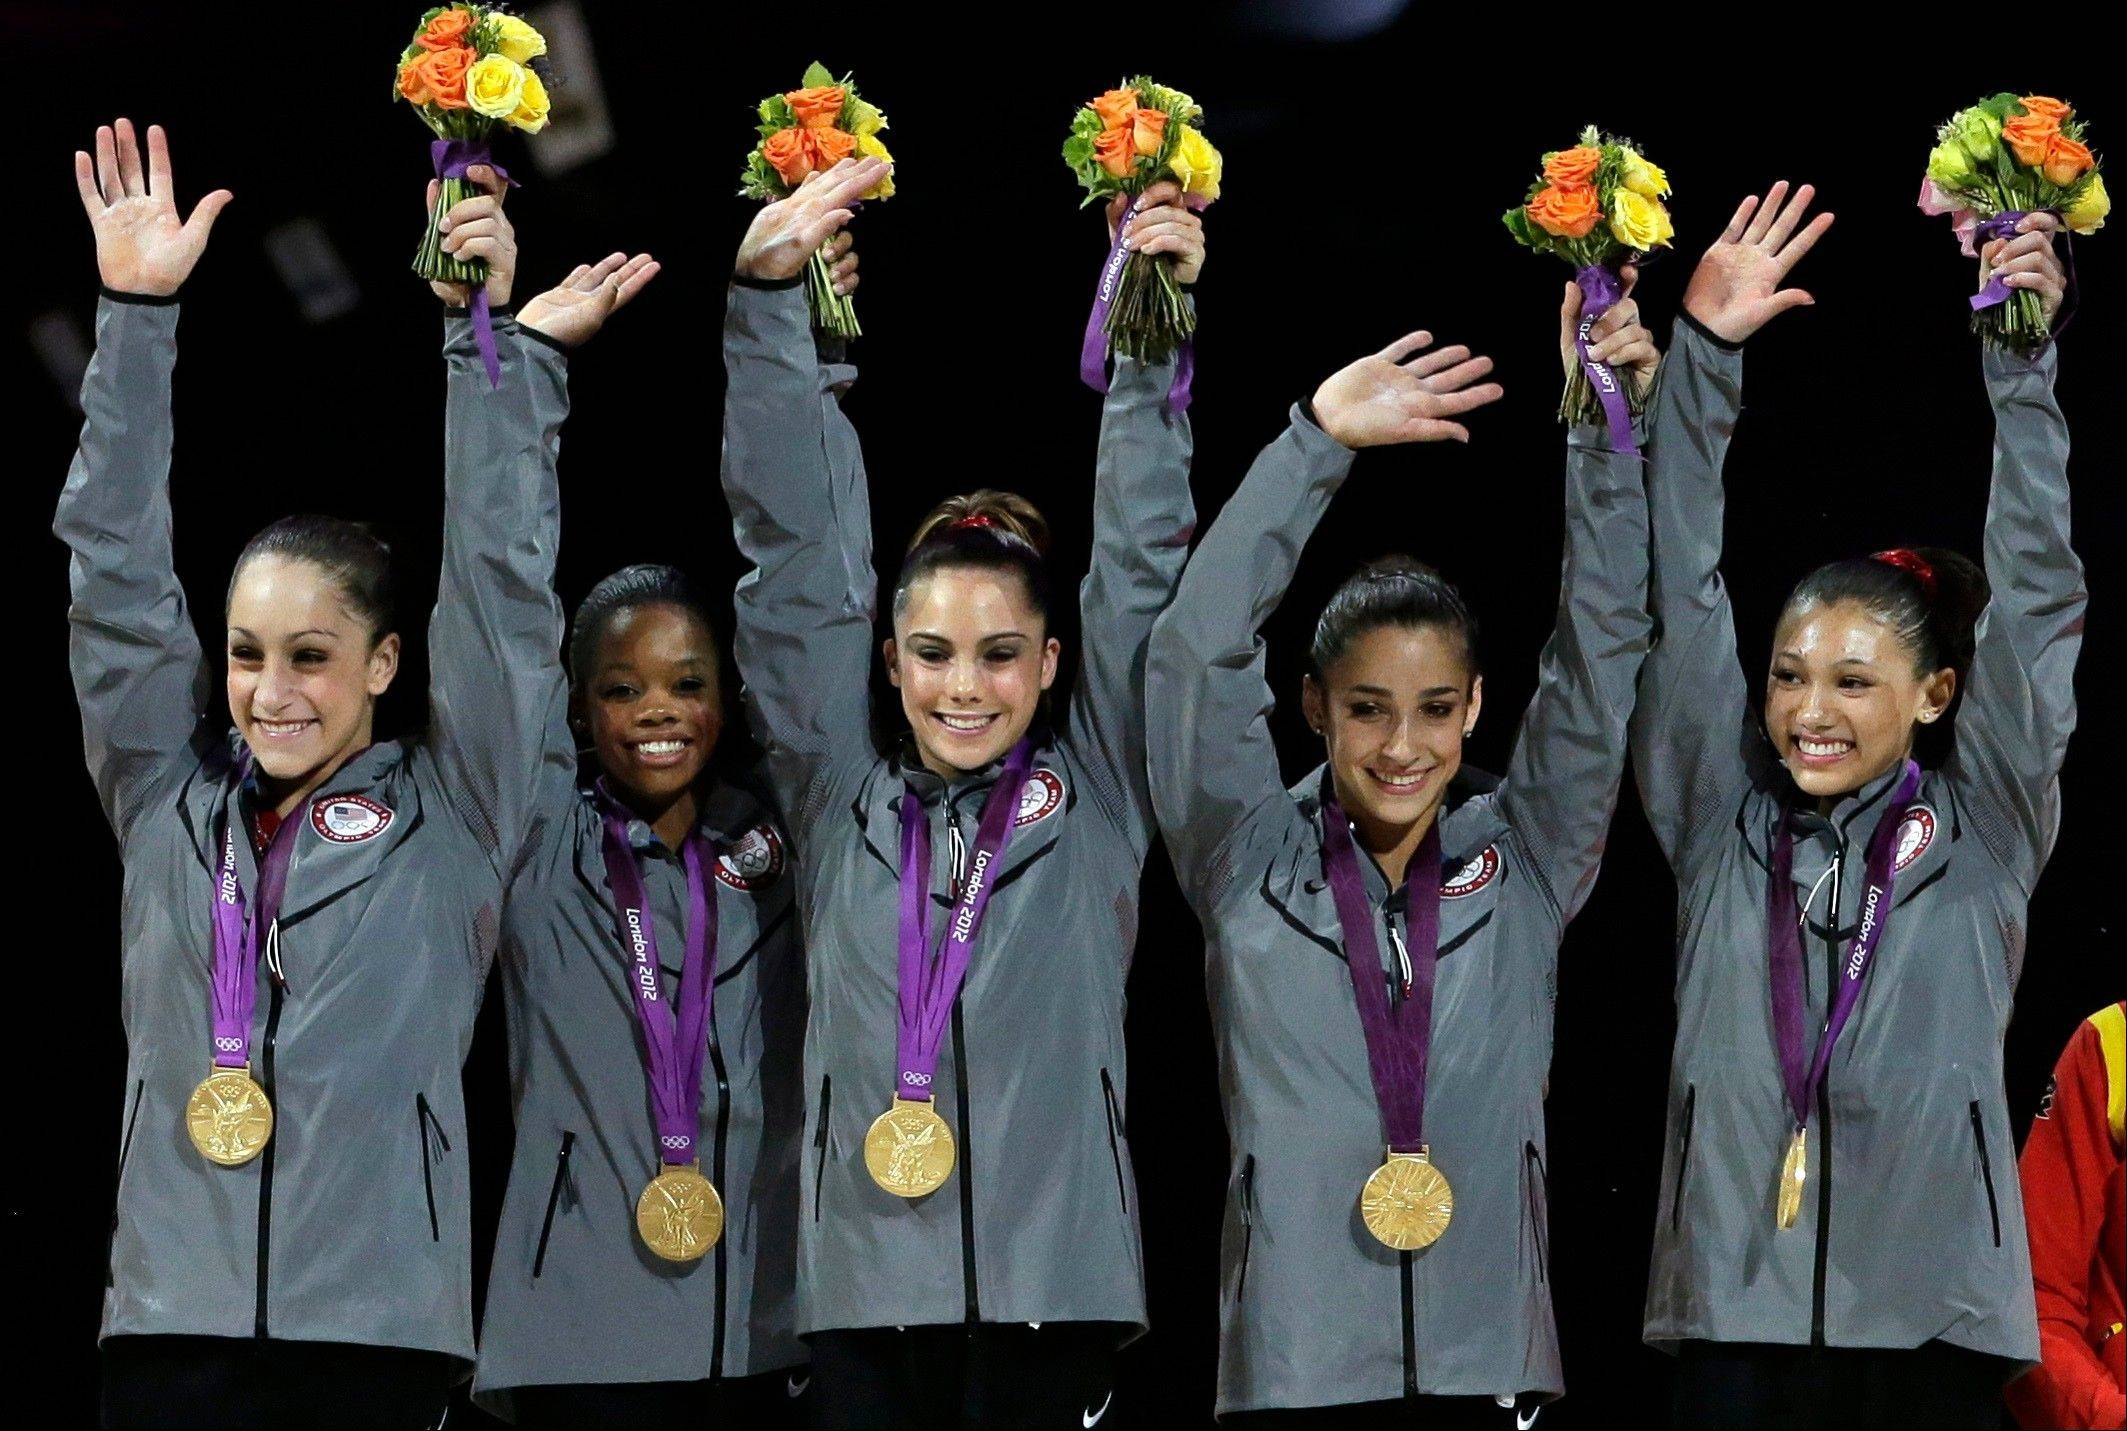 With the gymnastics competition over, the U.S. women — Jordyn Wieber, Gabby Douglas, McKayla Maroney, Aly Raisman and Kyla Ross — are beginning to realize just how big a deal they've become back home.